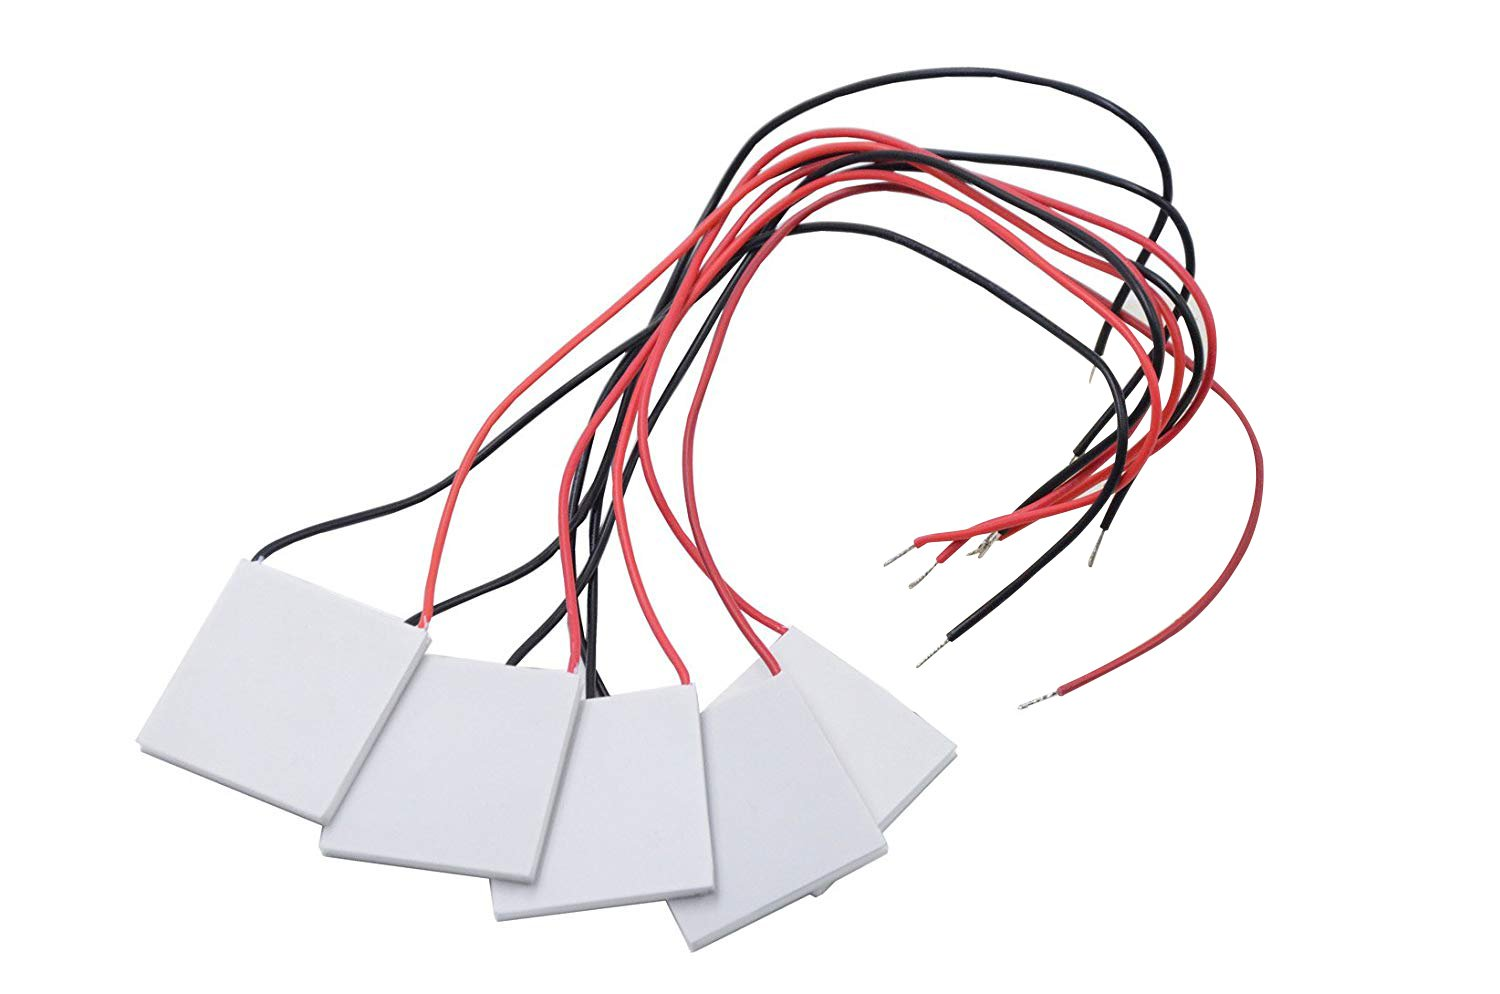 5PCS SP1848-27145 Heatsink Thermoelectric Cooler Cooling Peltier Plate Module 150℃ by Walfront (Image #1)